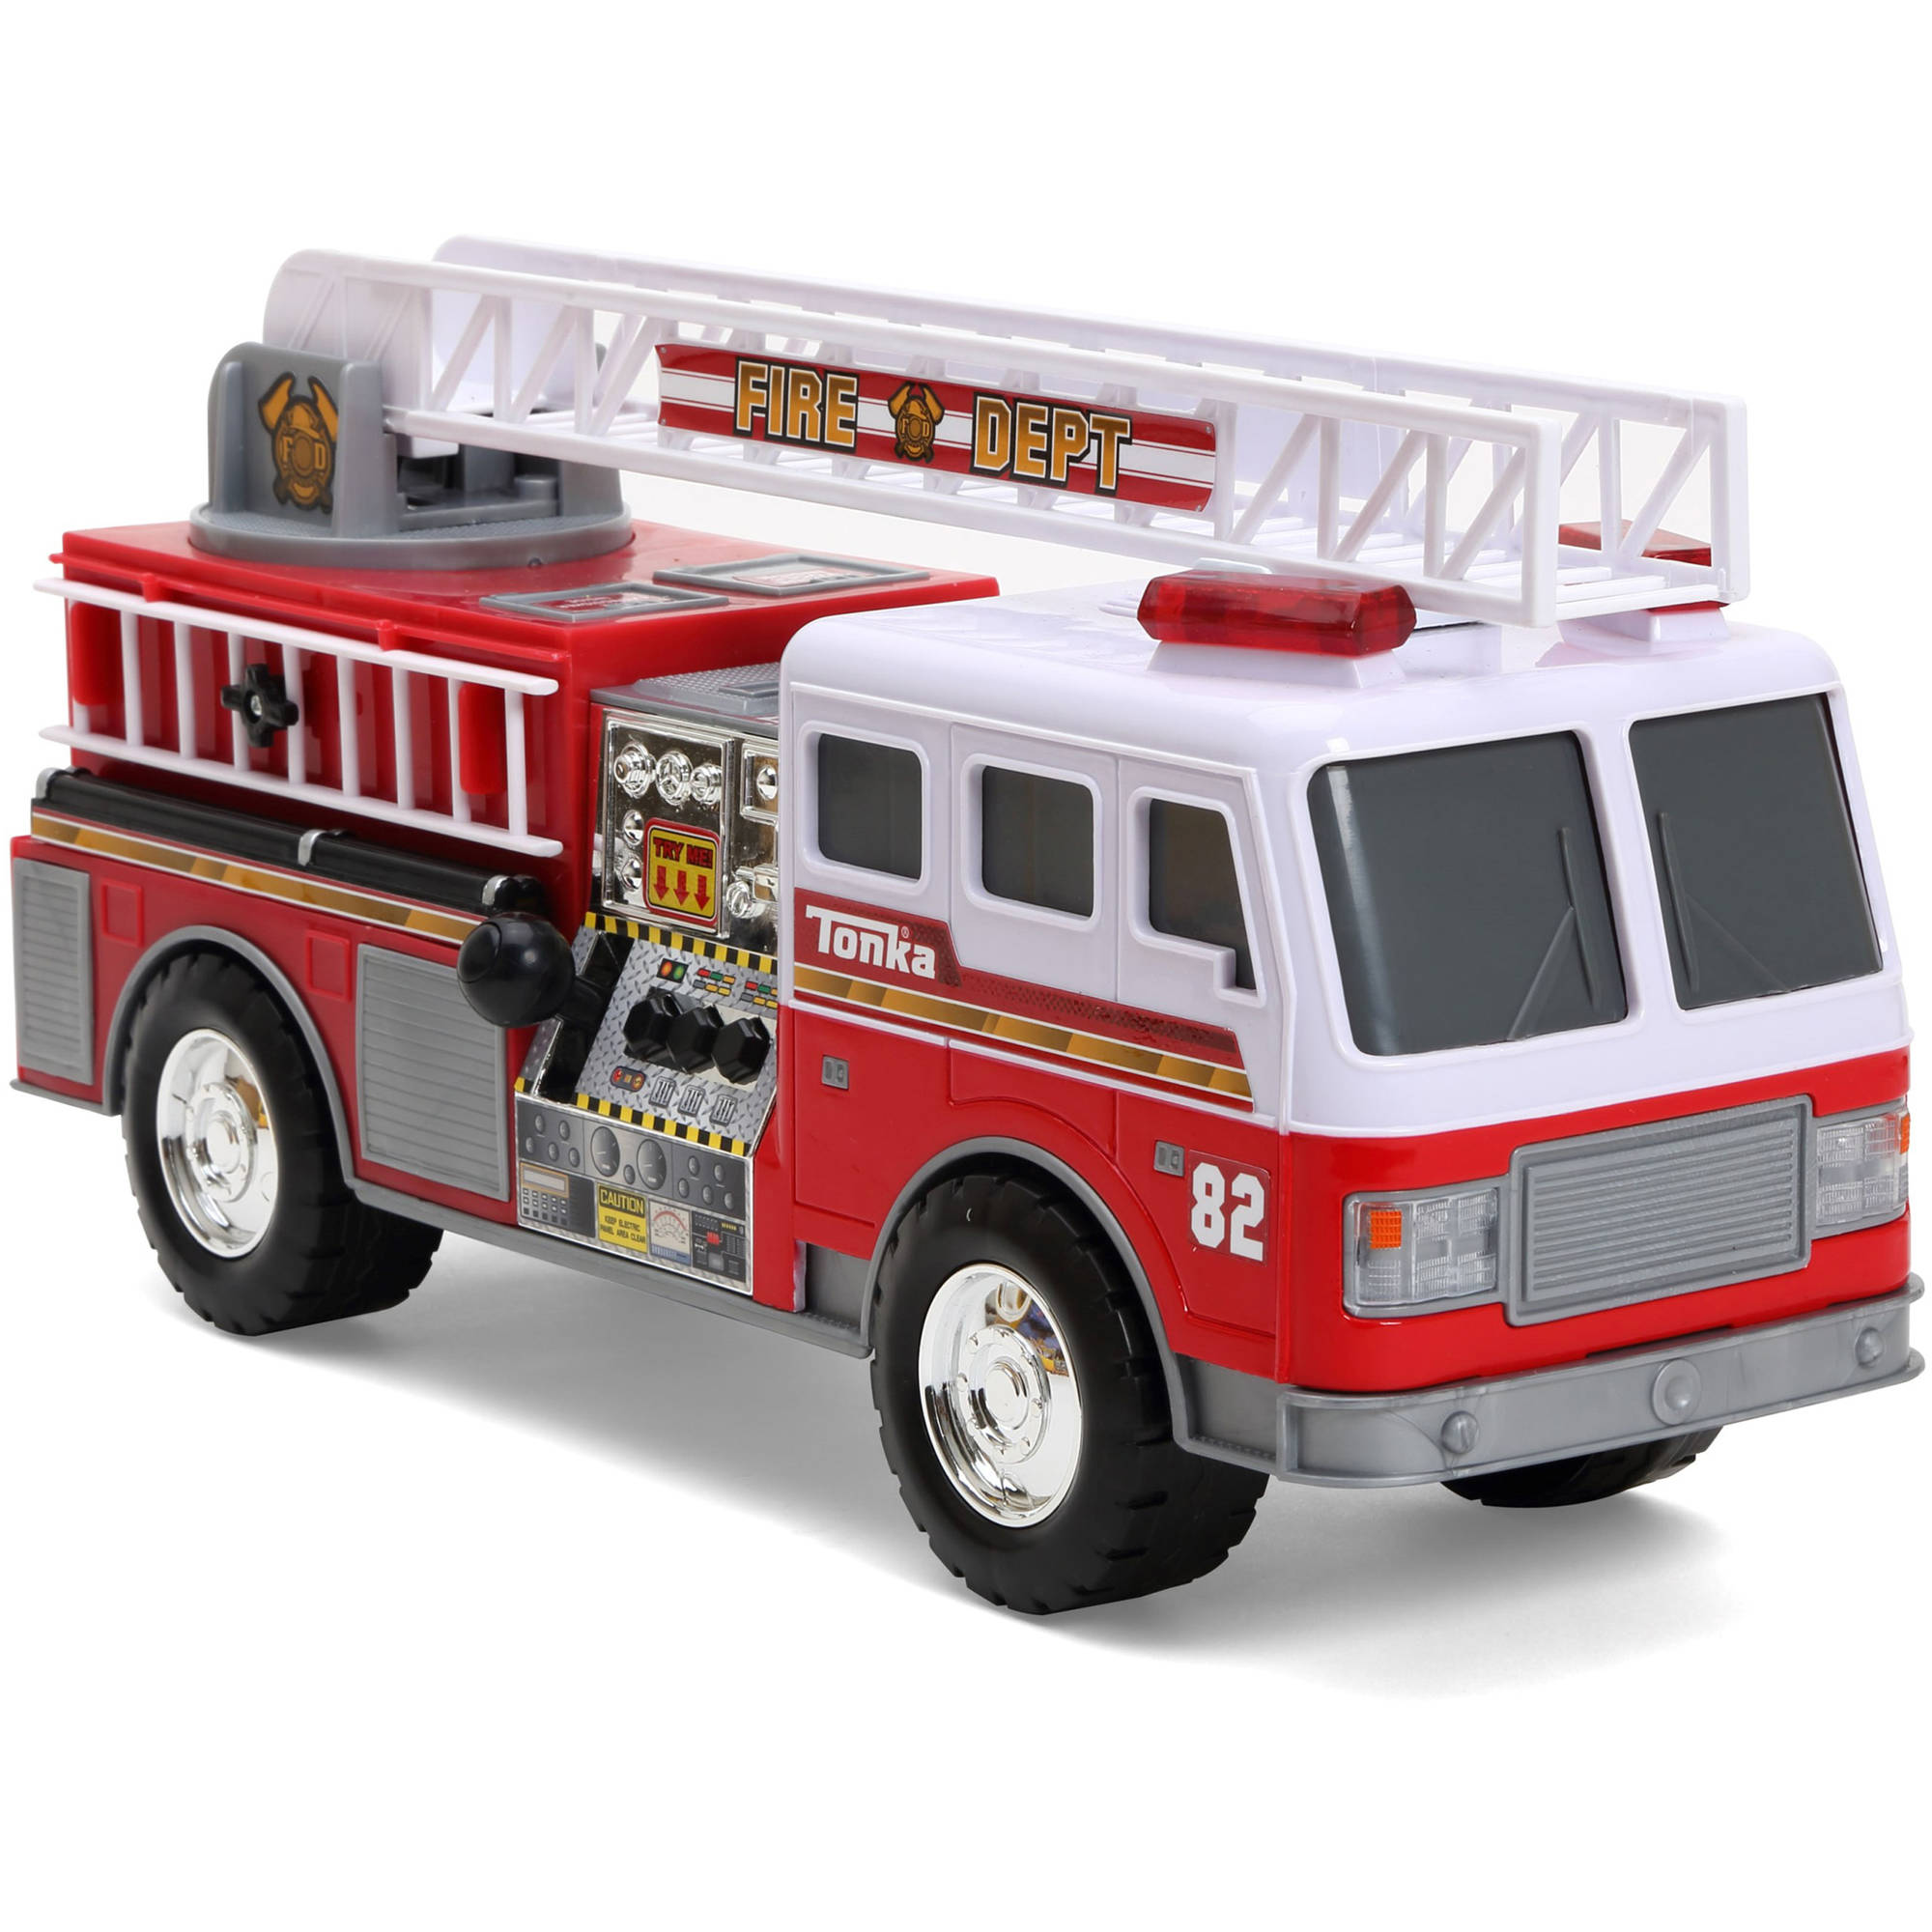 Tonka Mighty Motorized Fire Engine Vehicle